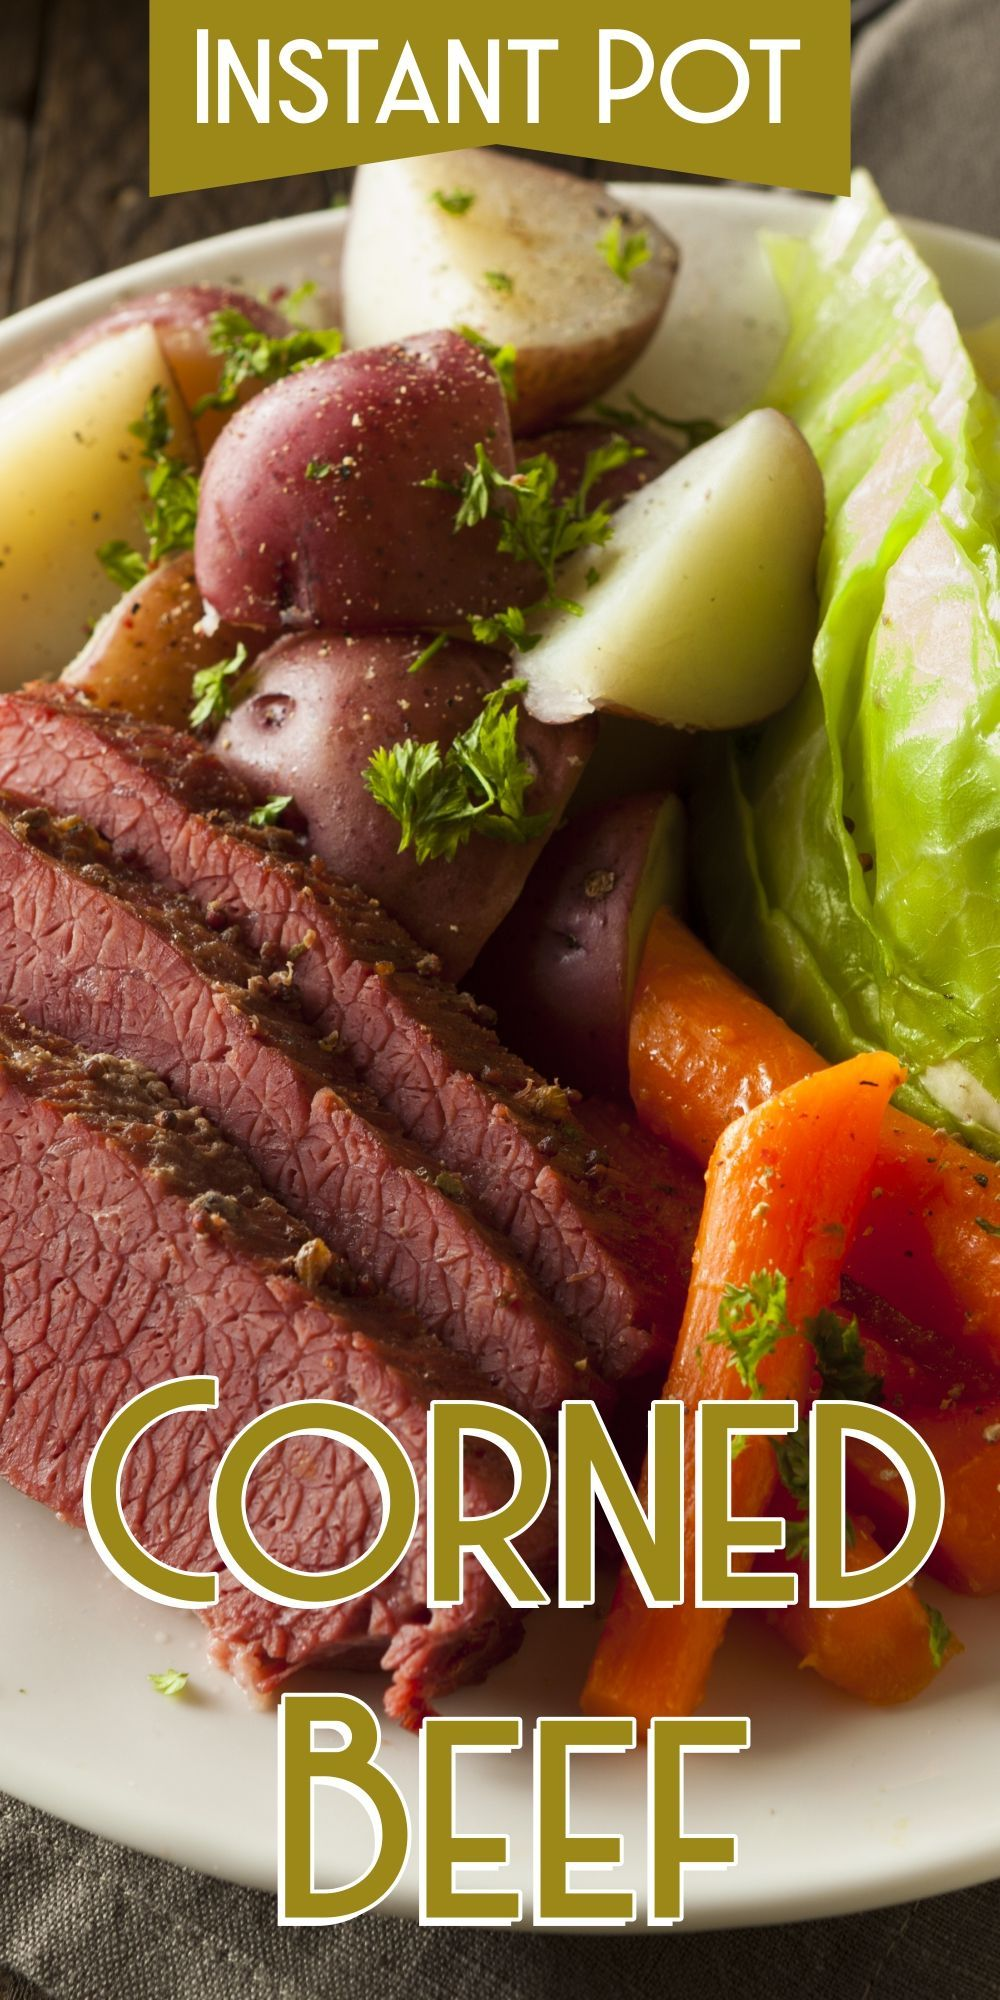 Corned Beef Can Be A Satisfying Dinner With Cabbage Potatoes Turnips And Carrots Slow Cooker Corned Beef Ground Beef And Cabbage Instant Pot Recipes